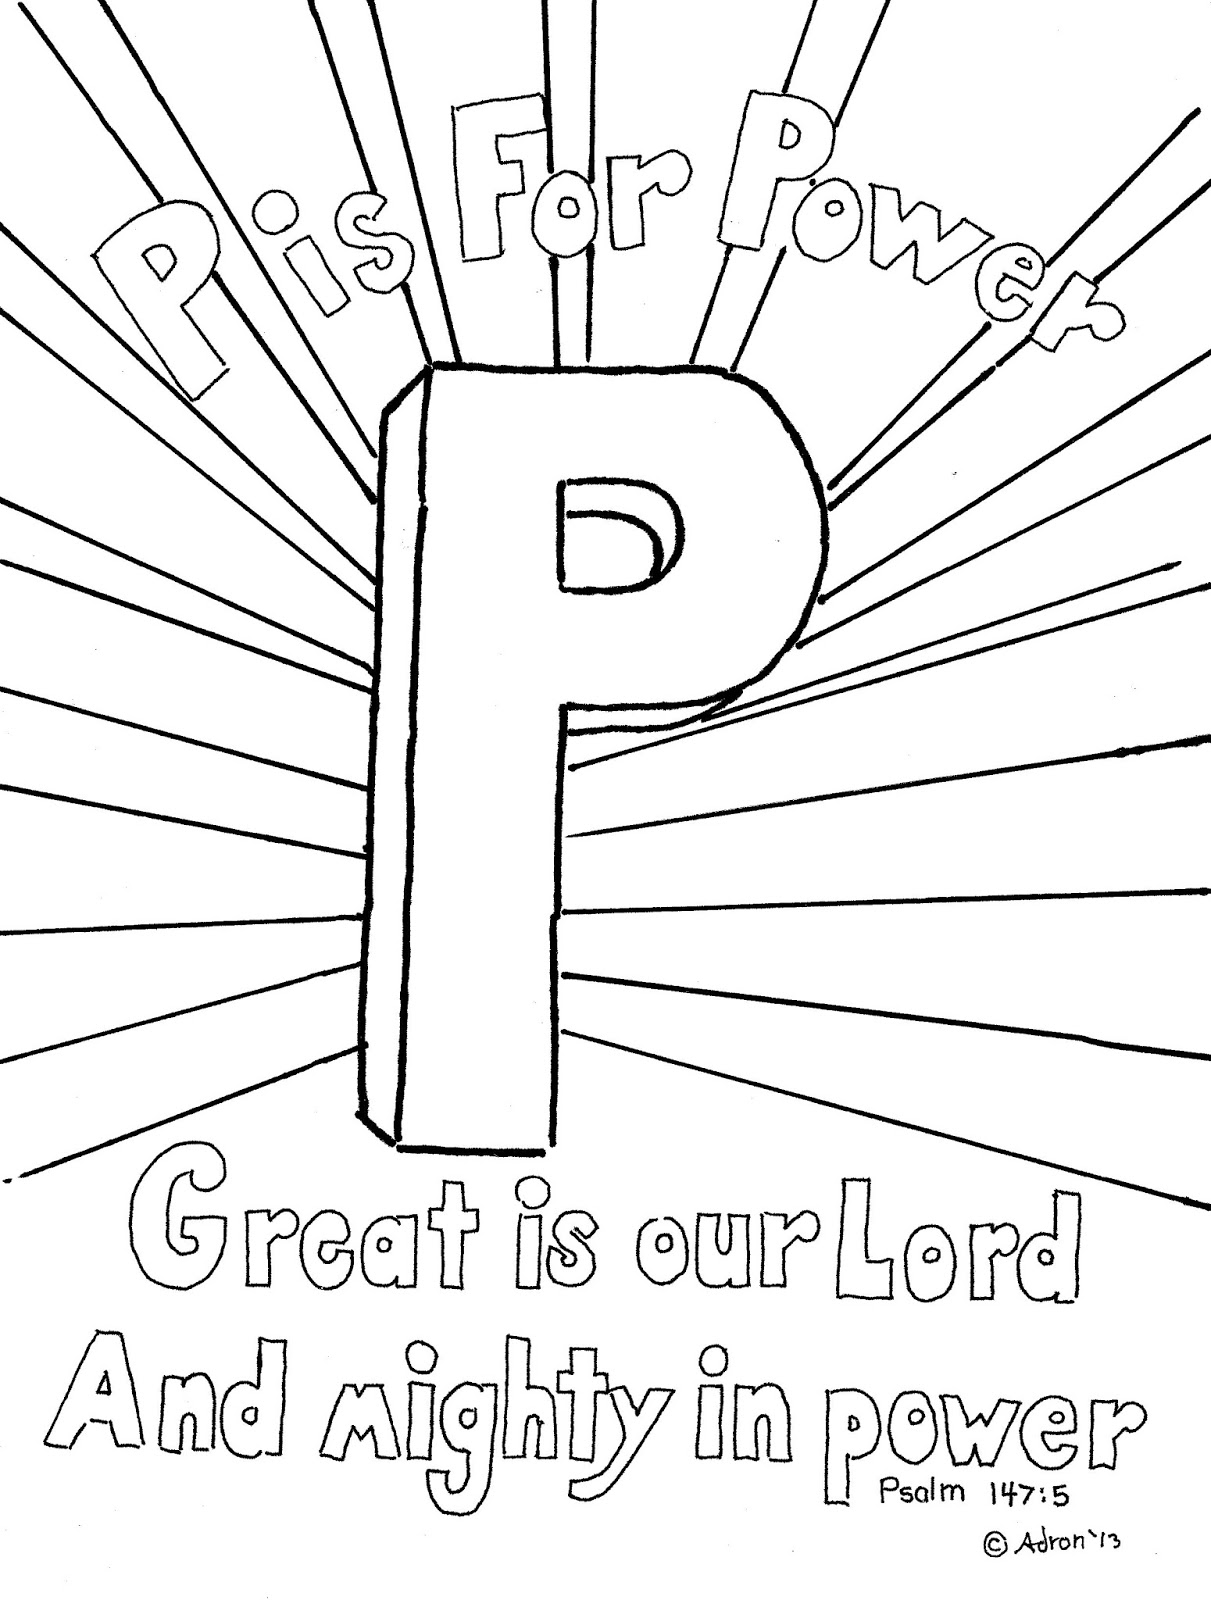 awana sparks printable coloring pages - photo#12